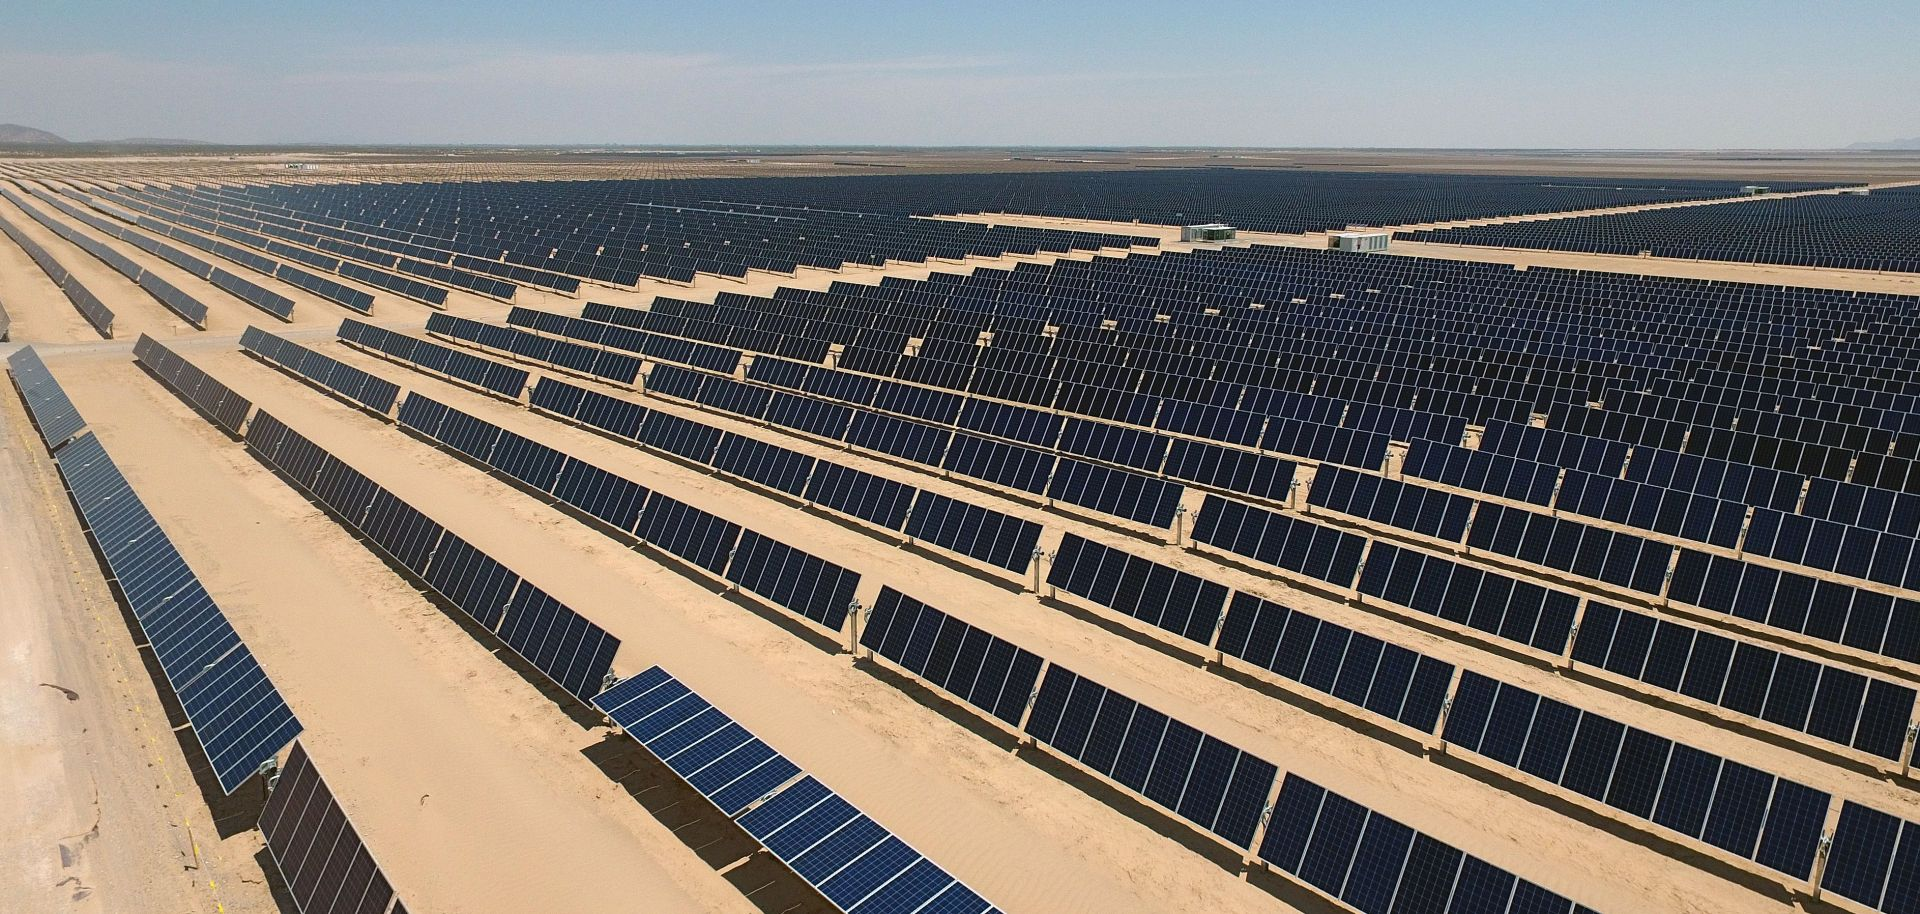 The Villanueva plant in Mexico is the size of 40 football fields, making it the largest solar plant in the Americas.